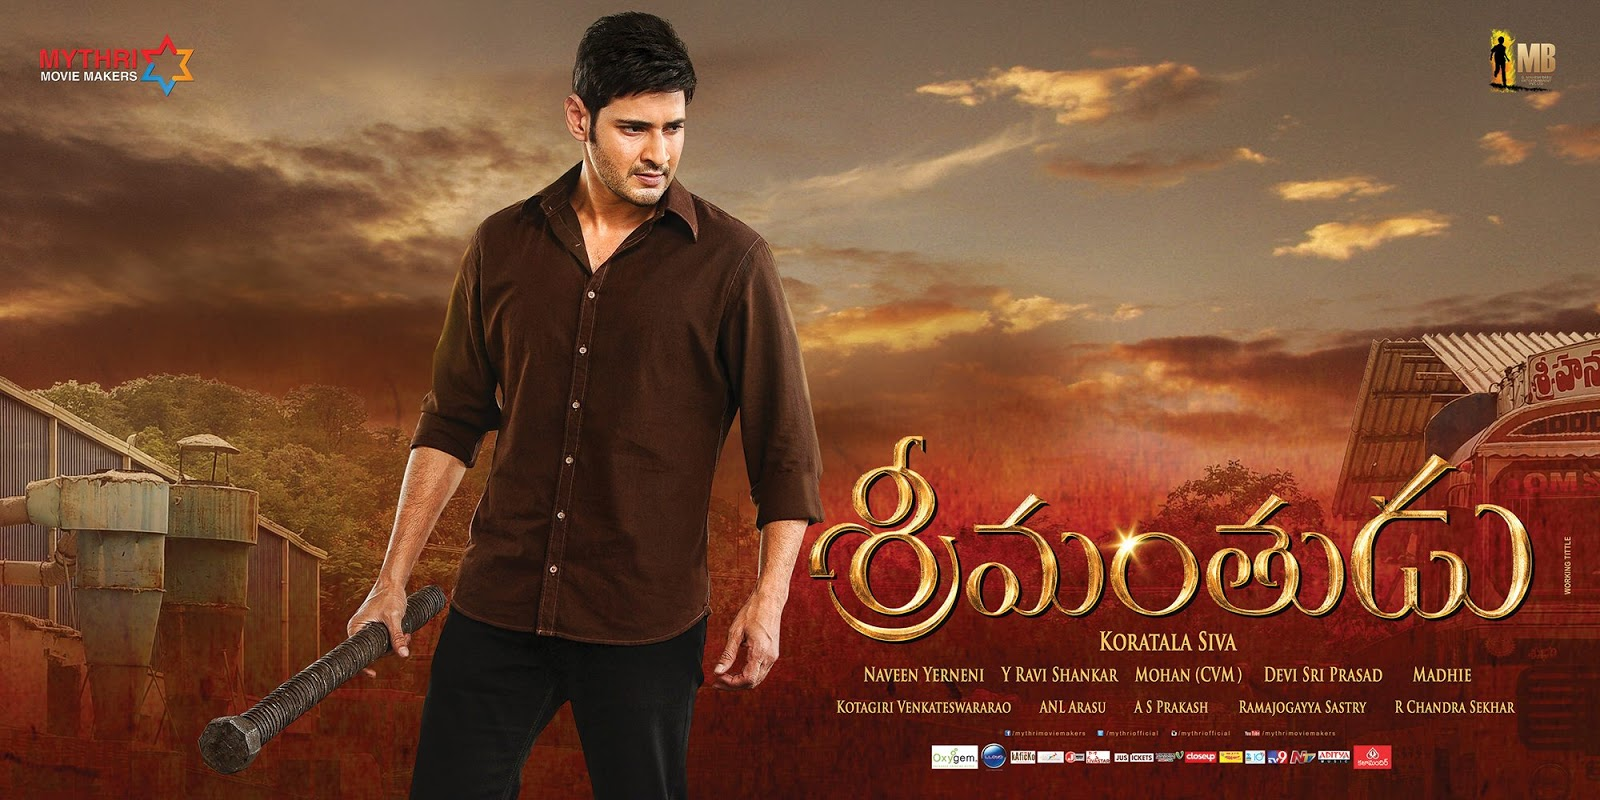 Srimanthudu%2BFights%2B2 Top 10 Tollywood Movies of All Time By Box Office Collection